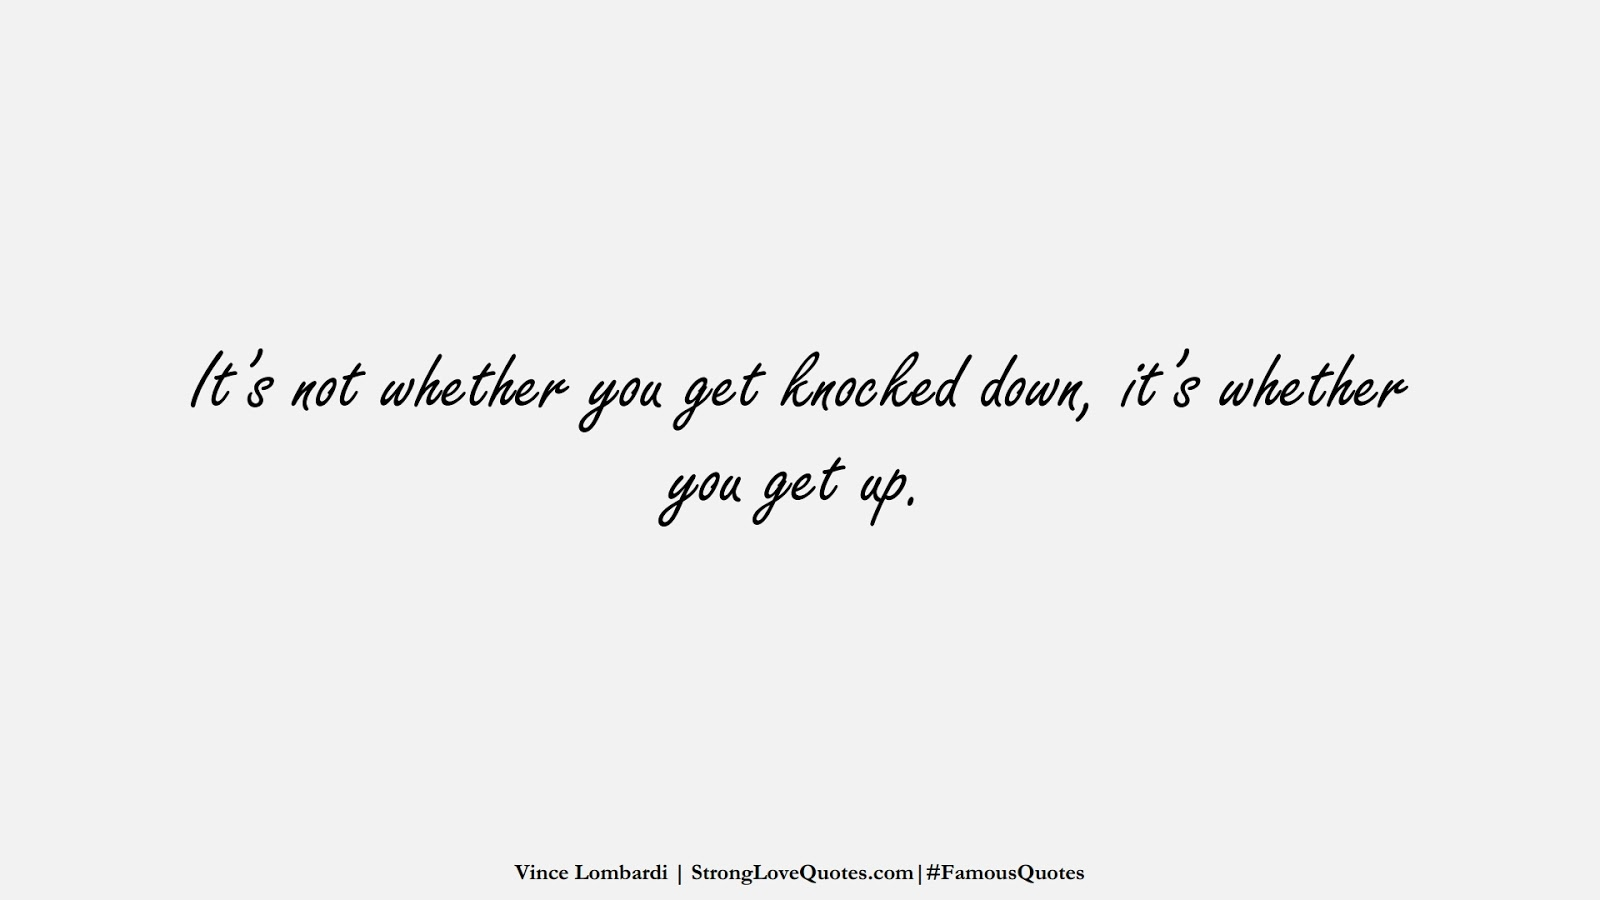 It's not whether you get knocked down, it's whether you get up. (Vince Lombardi);  #FamousQuotes